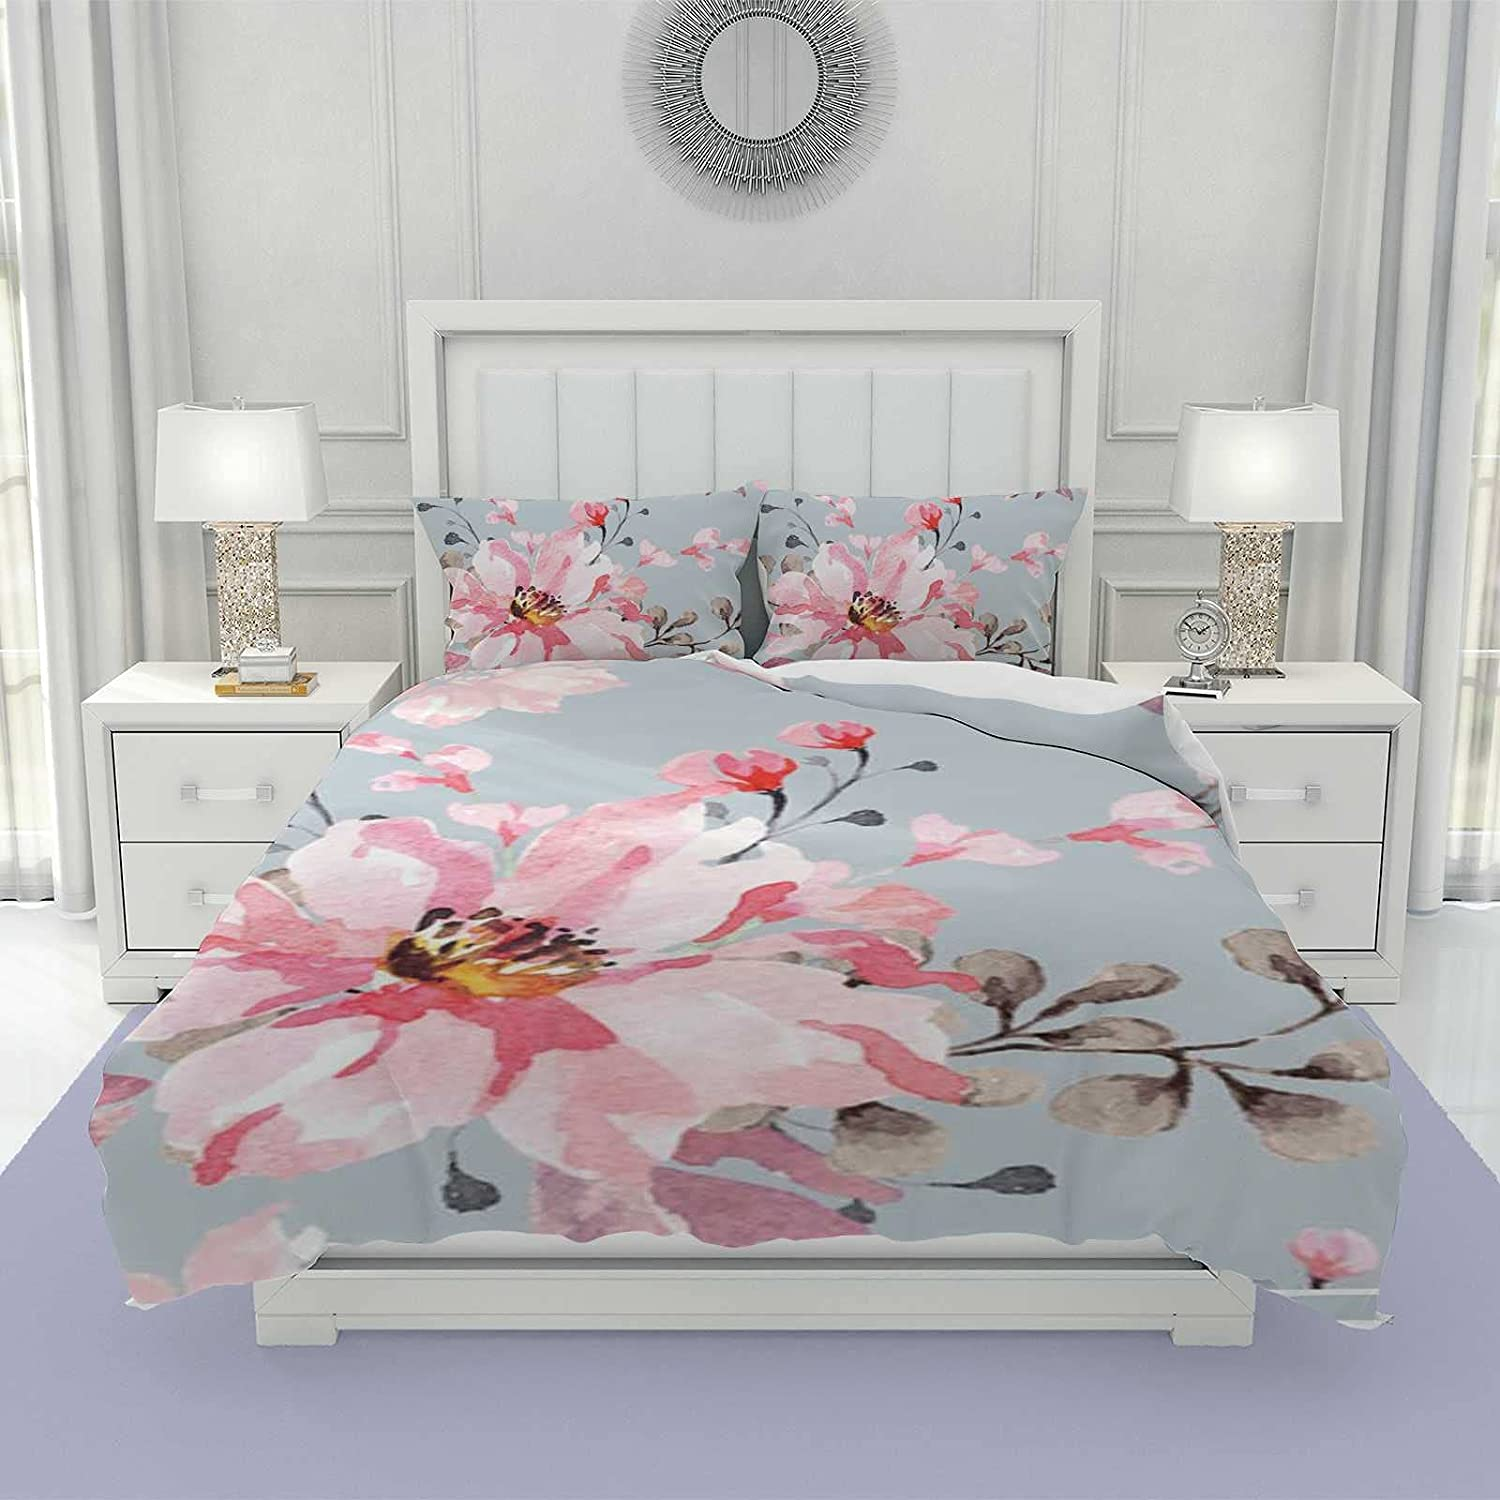 3Pcs Duvet Max 62% OFF Cover Set for Girls Size w New product type Women and King